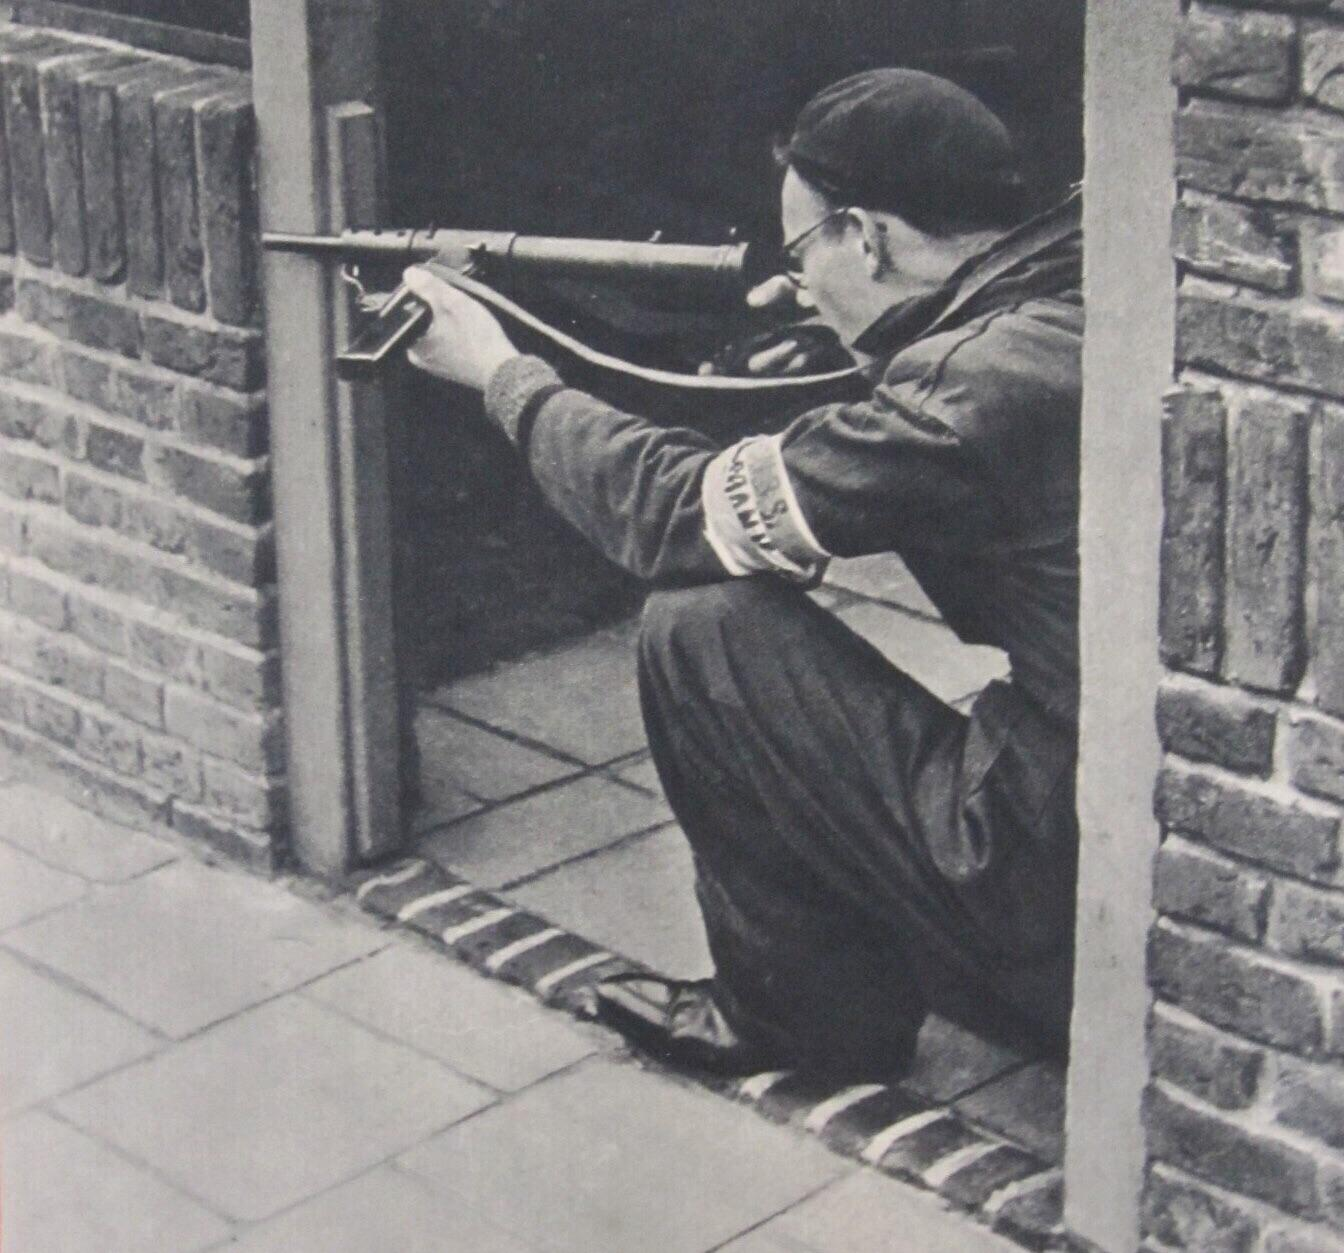 My grandfather, fighting for the Dutch resistance in Delft during WWII. He says he looks all cool but was actually shitting himself. ... and look at those shinie shoes!.jpg